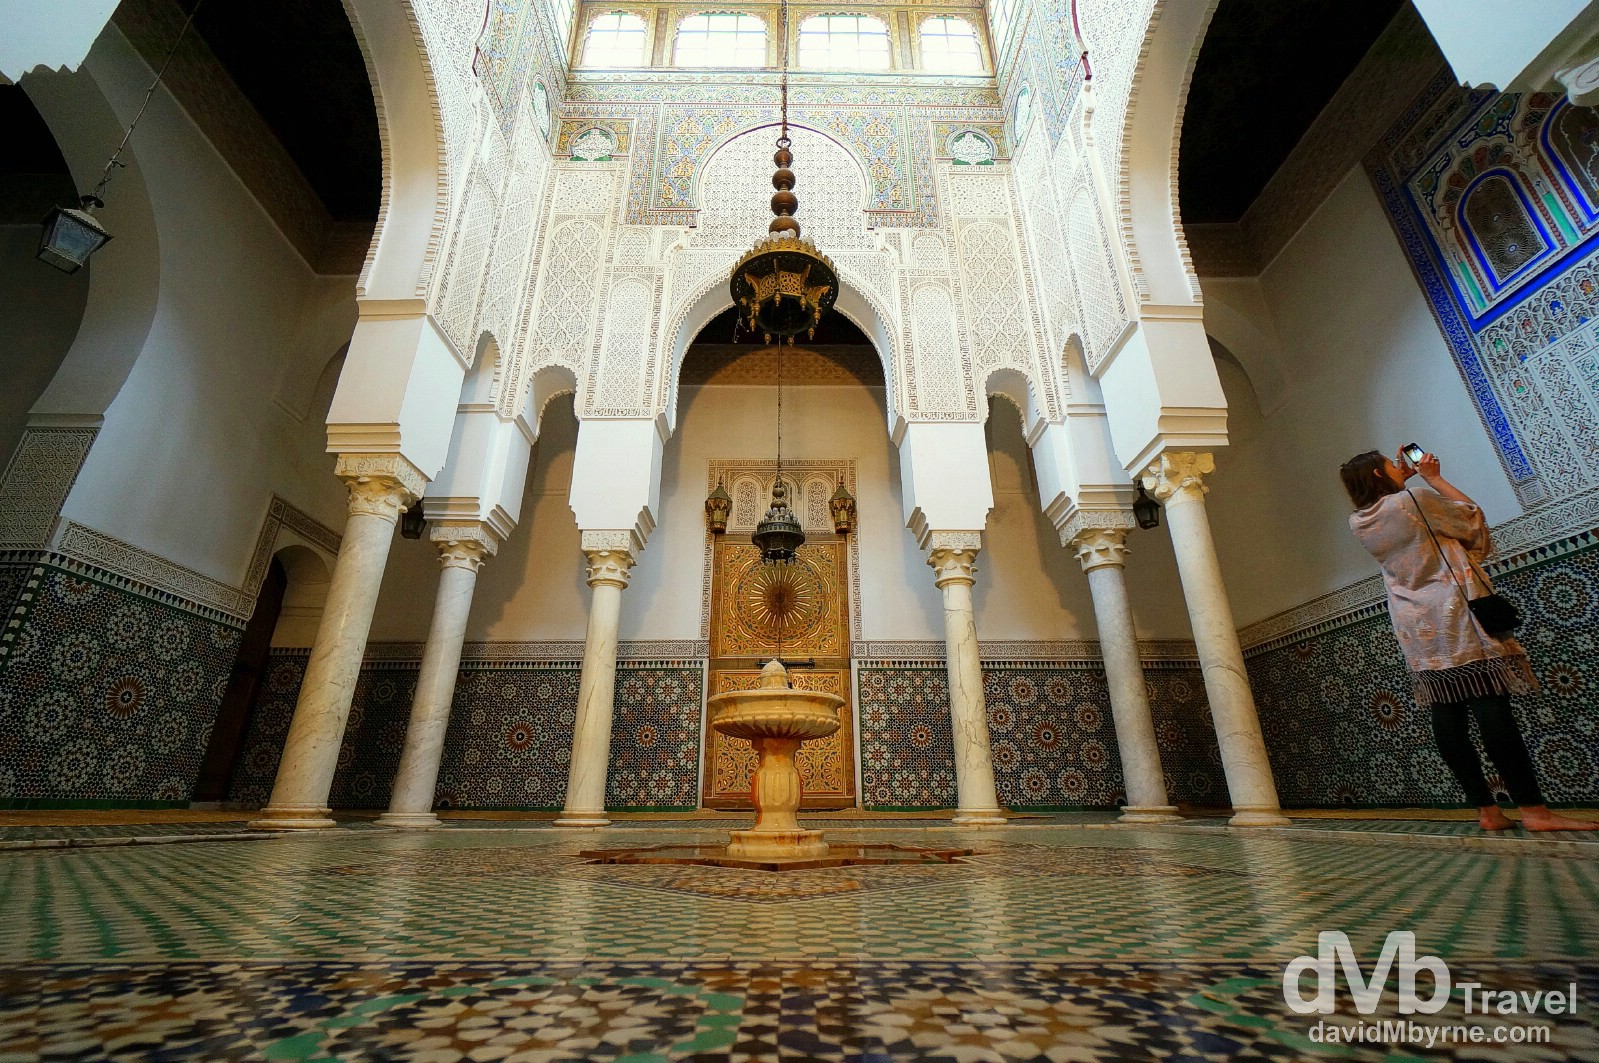 A section of the stunning tomb hall of the Moulay Ismail Mausoleum showcasing the best of Moroccan craftsmanship. Meknes, Morocco. May 24th, 2014.